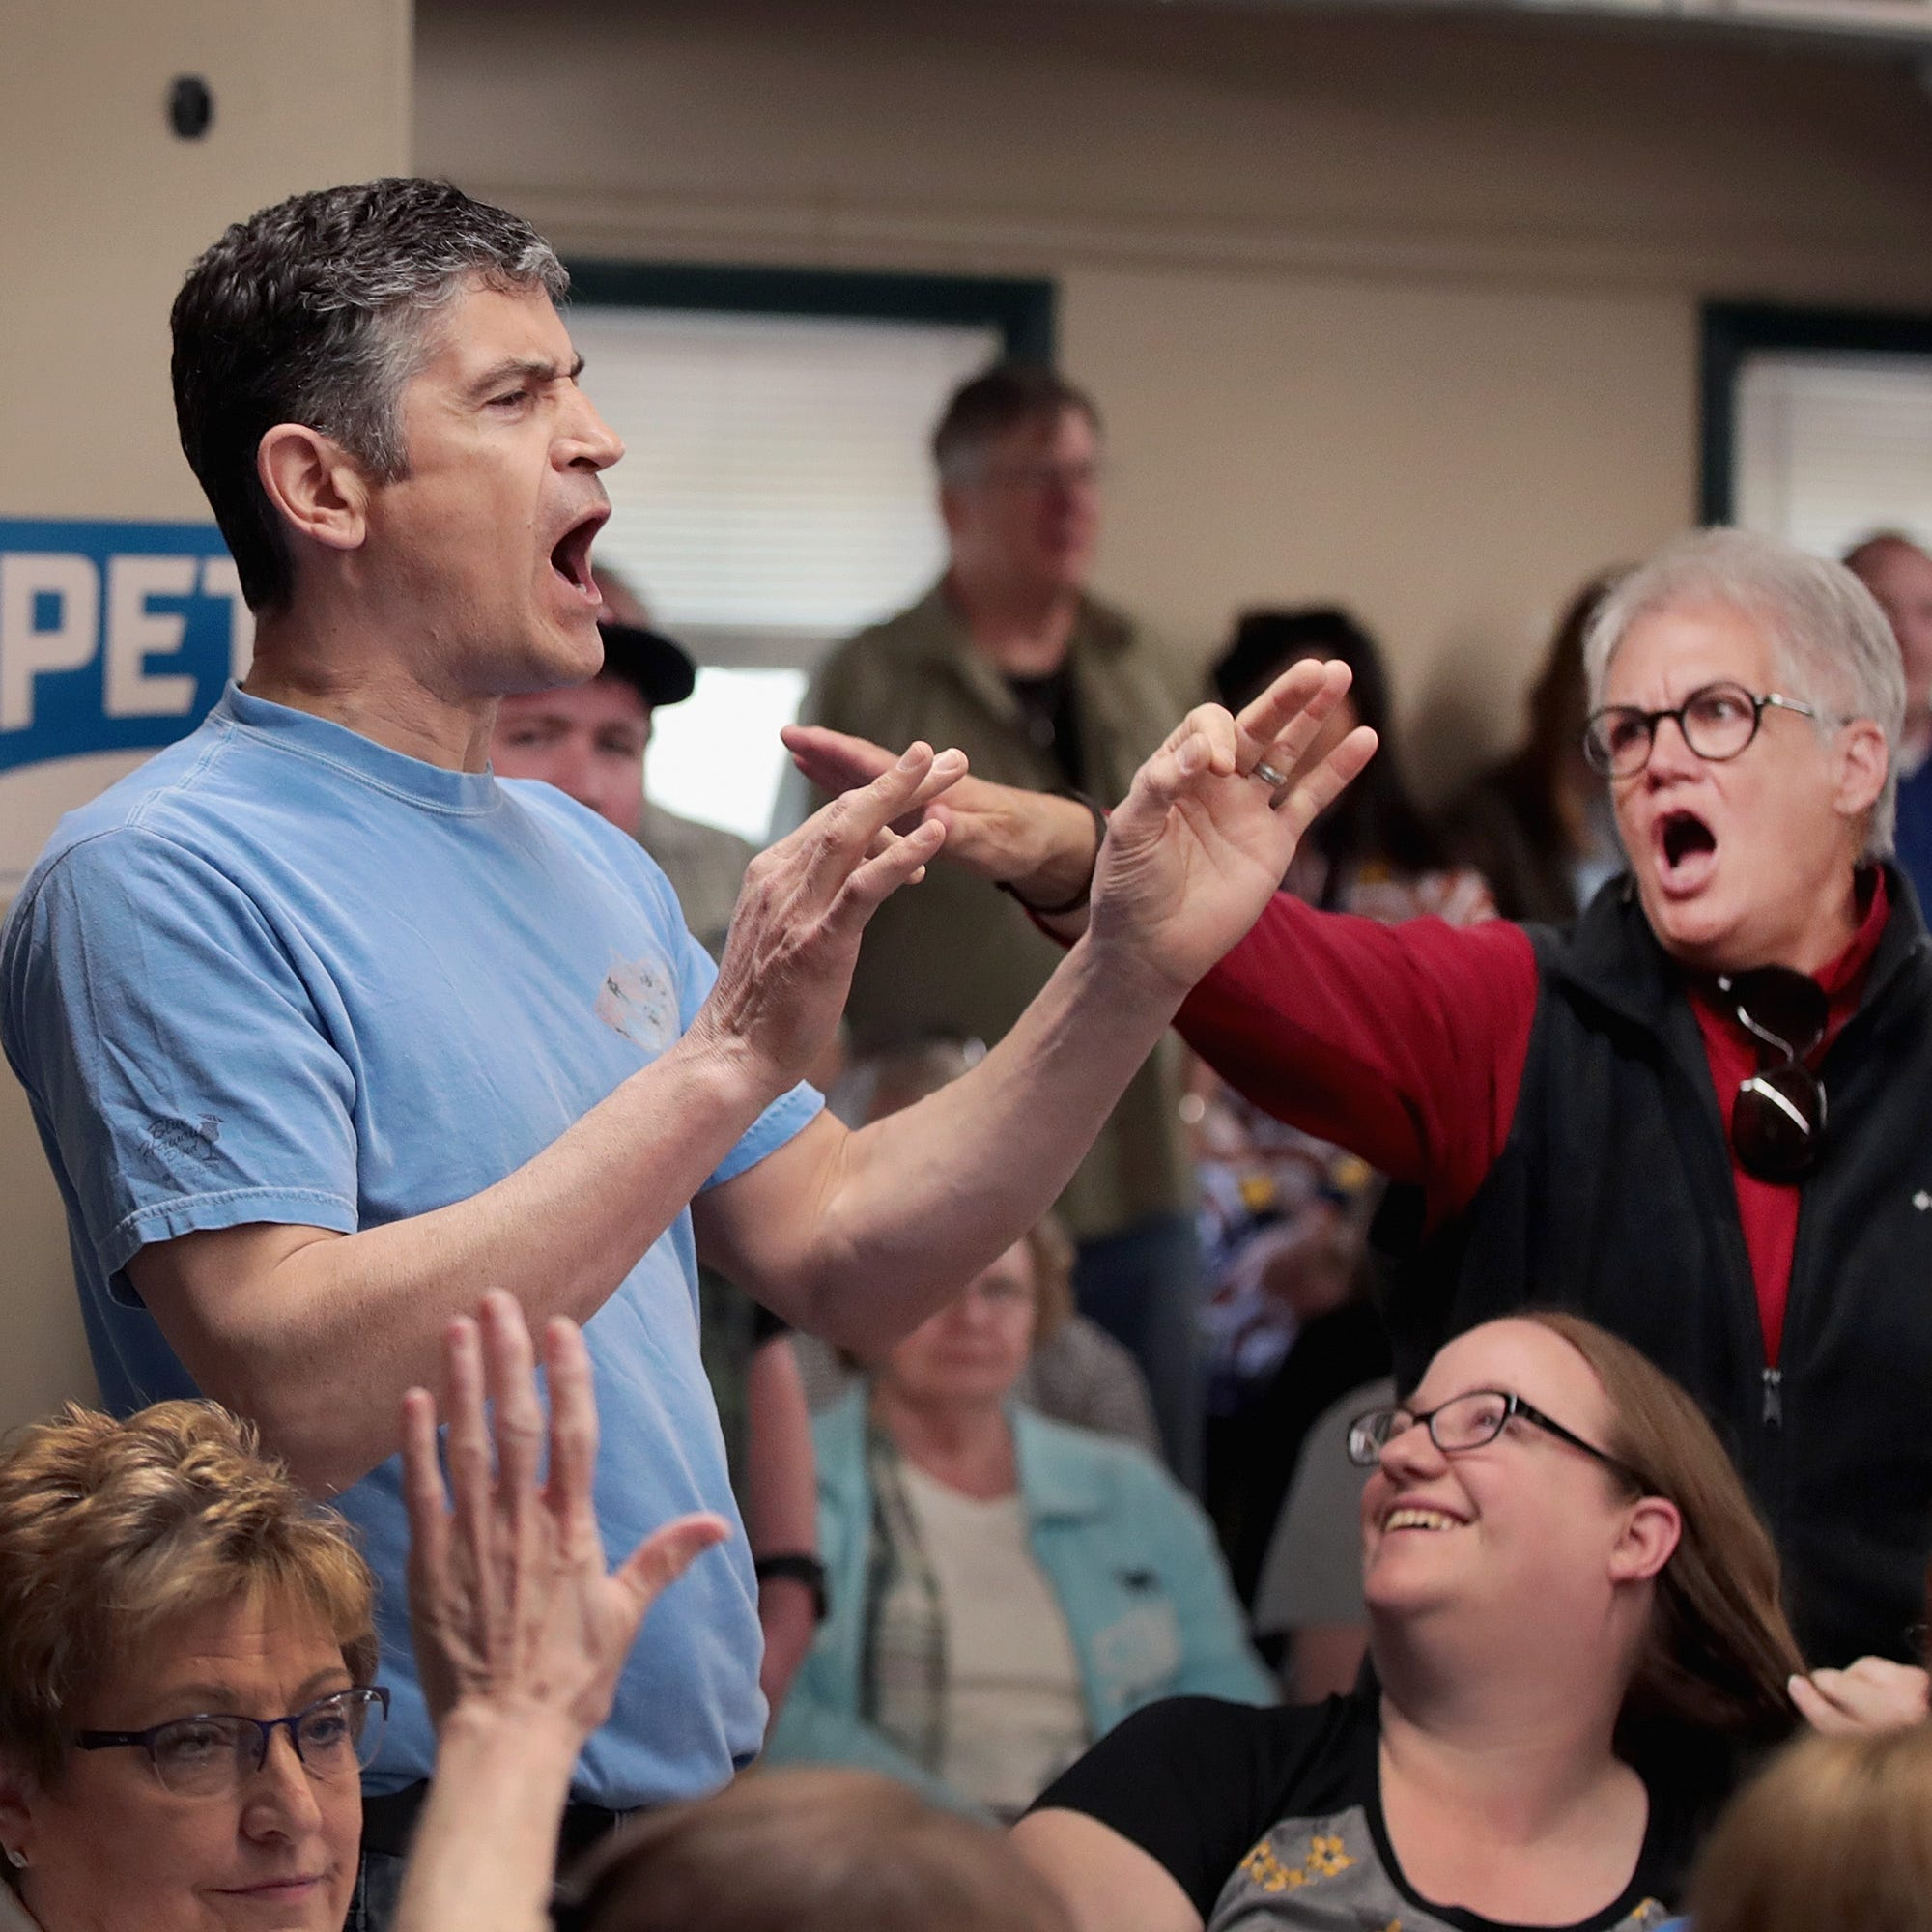 Randall Terry shouts about Sodom and Gomorrah at Pete Buttigieg rally in Iowa